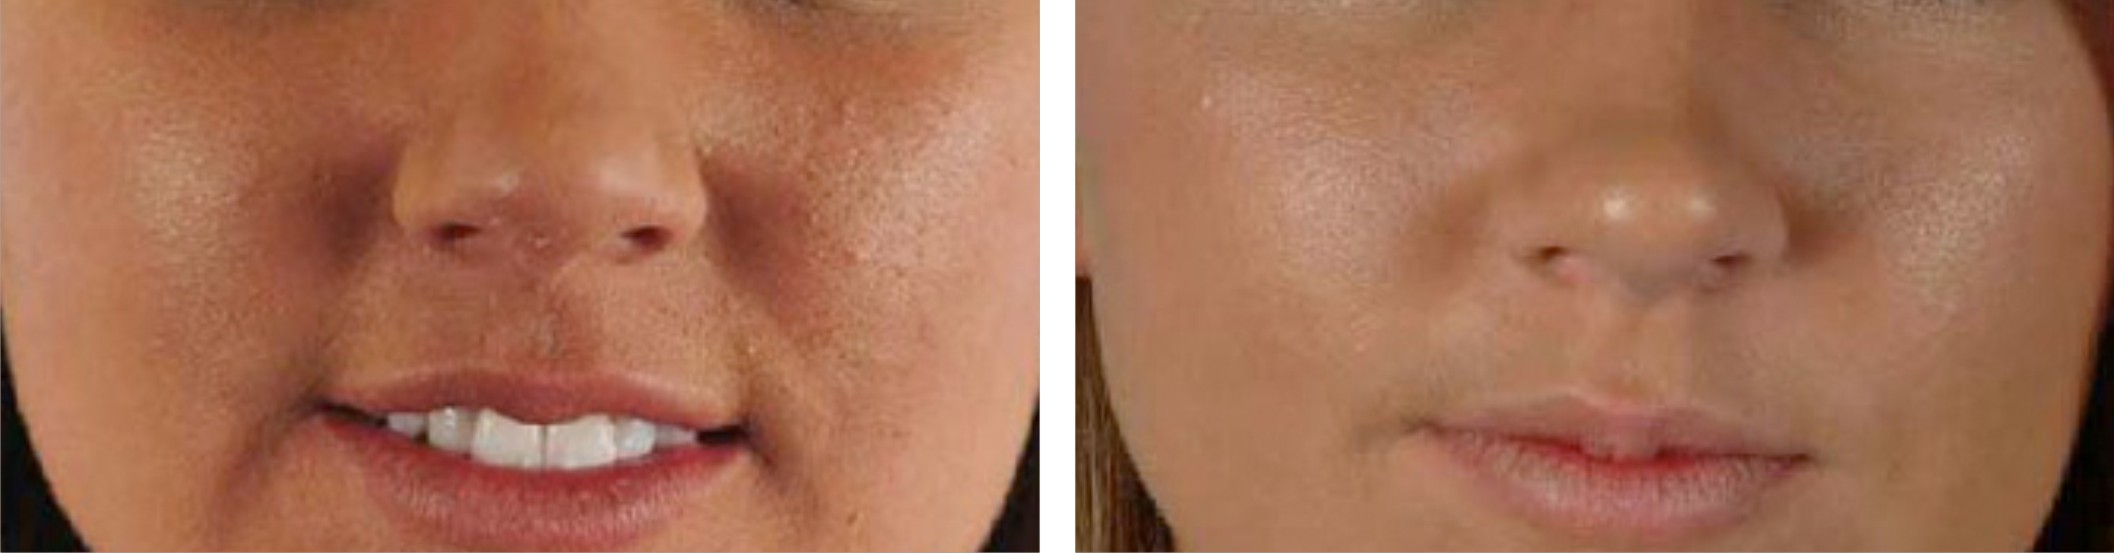 Microdermabrasion Image One